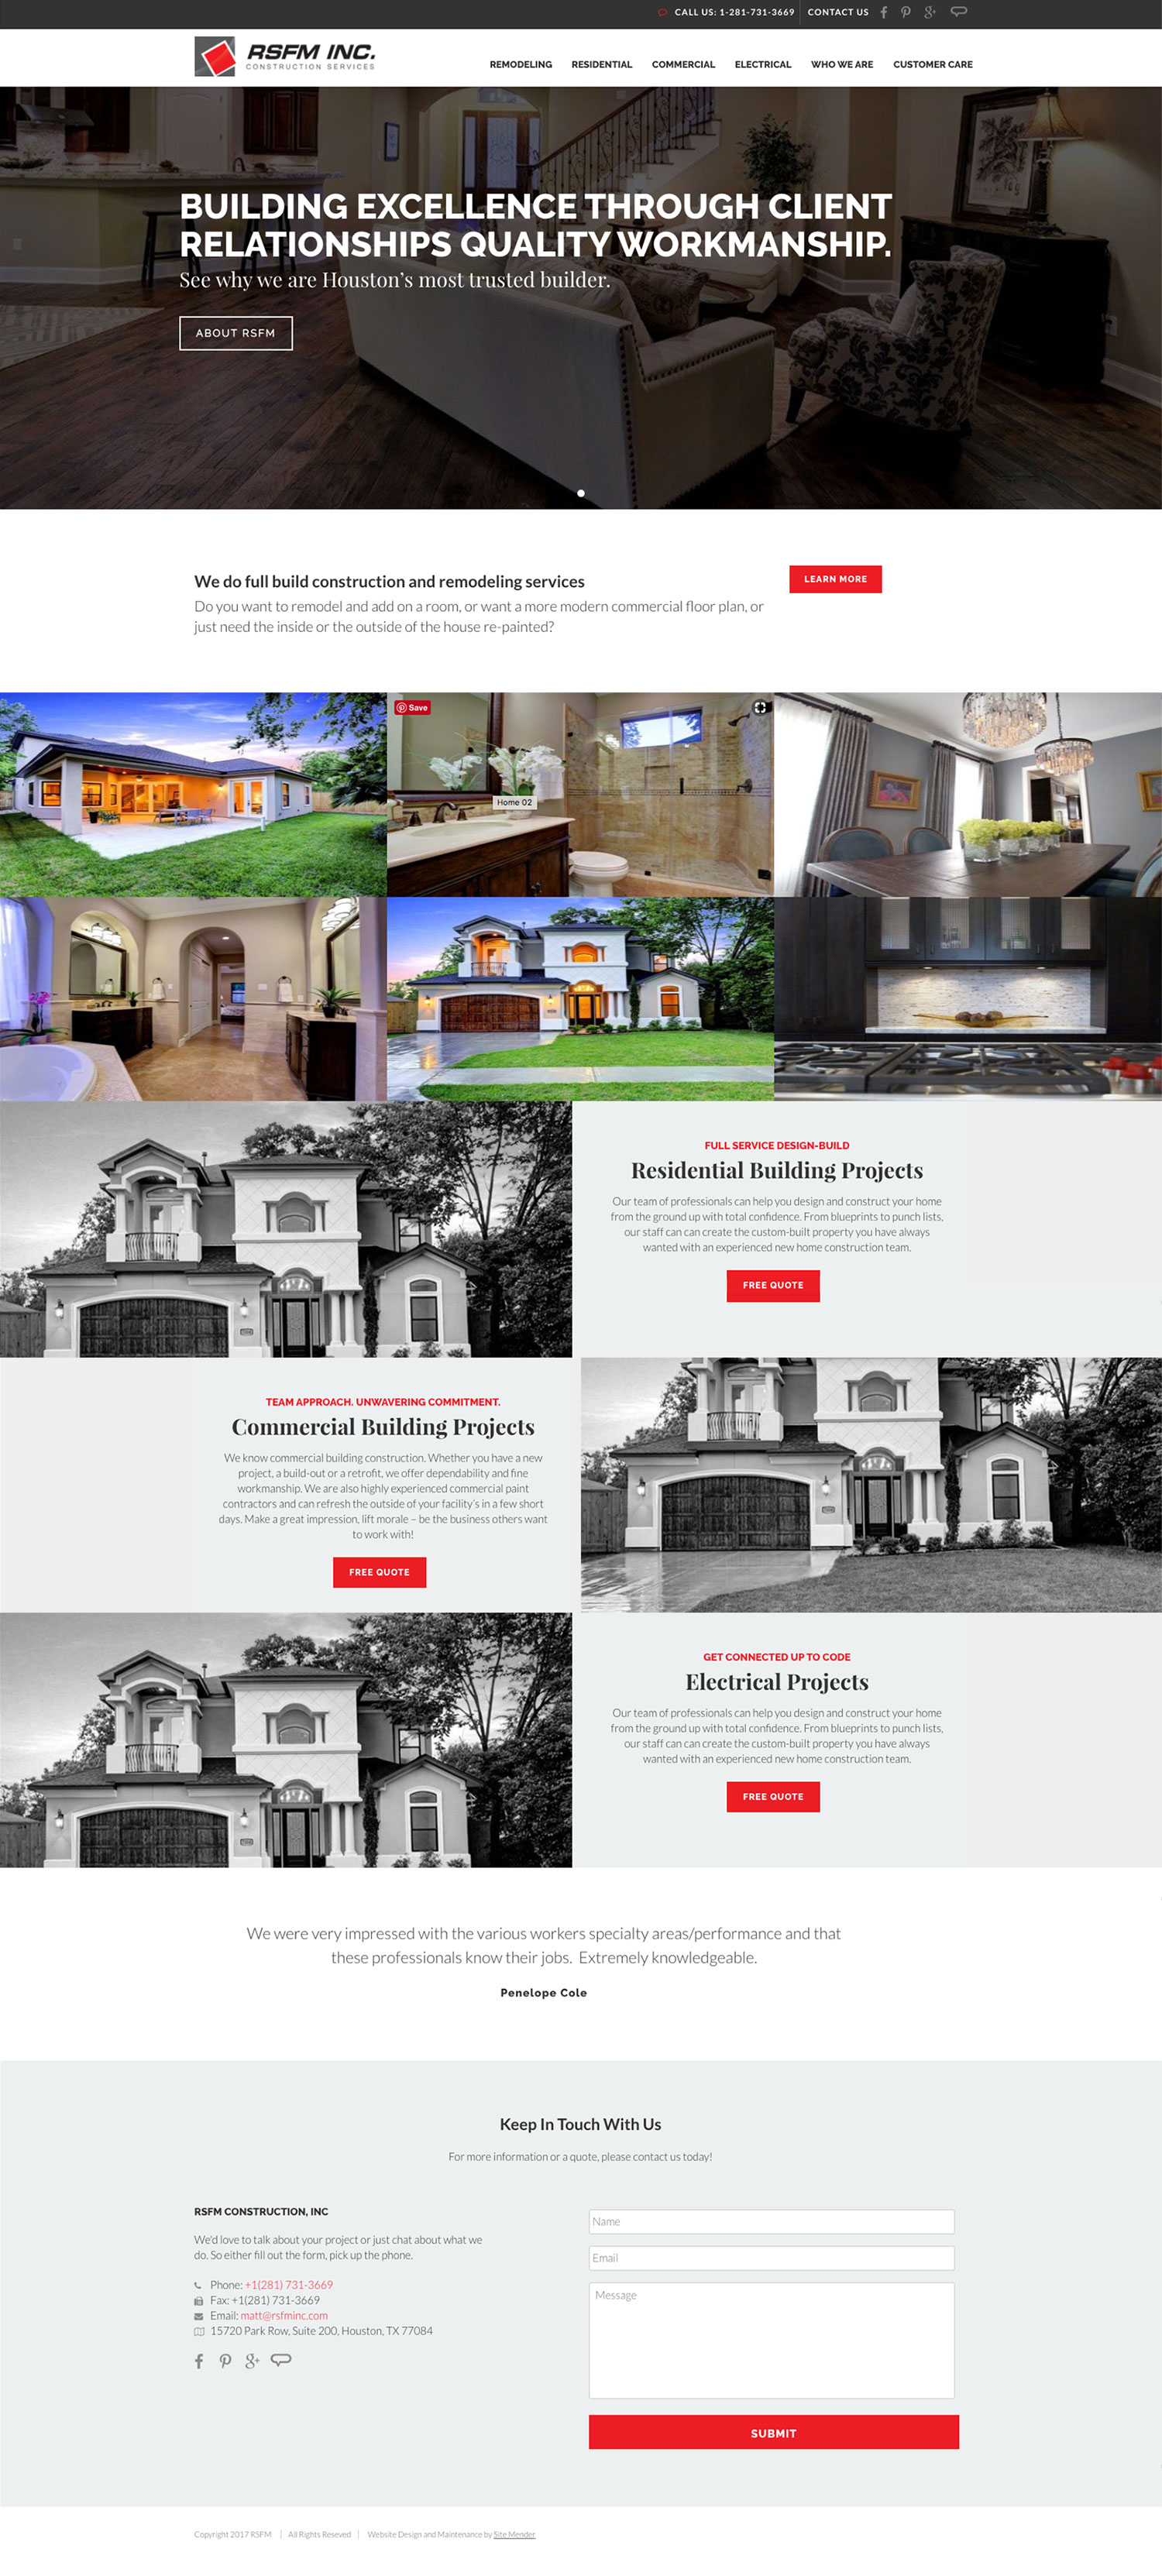 The new Houston construction company website design for RSFM Construction.